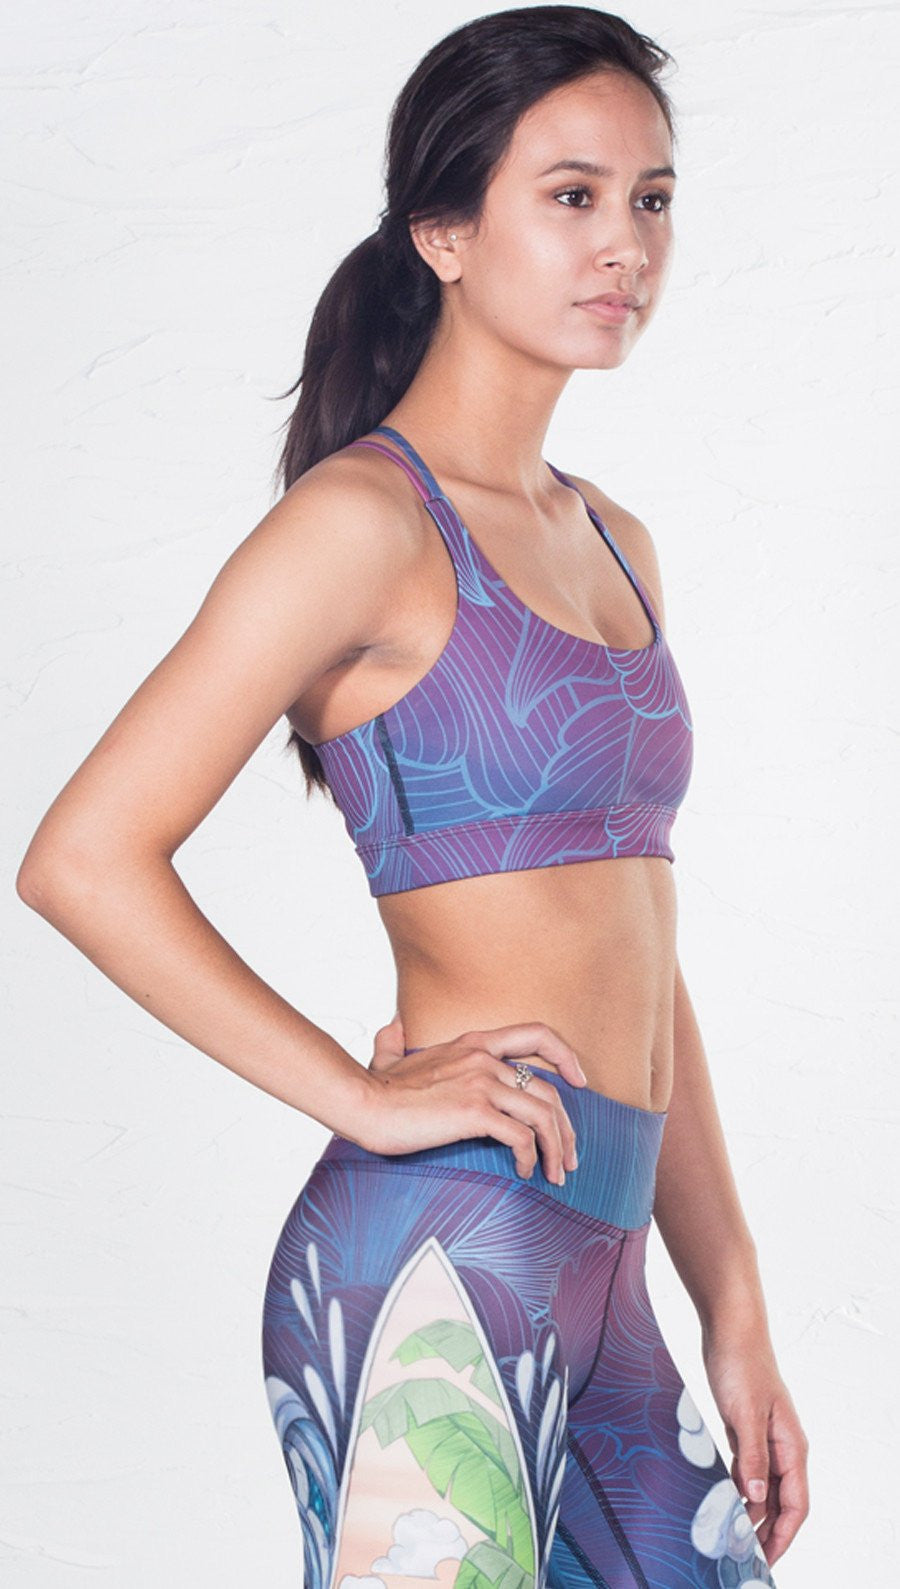 closeup front view of model wearing surf and flower inspired printed sports bra